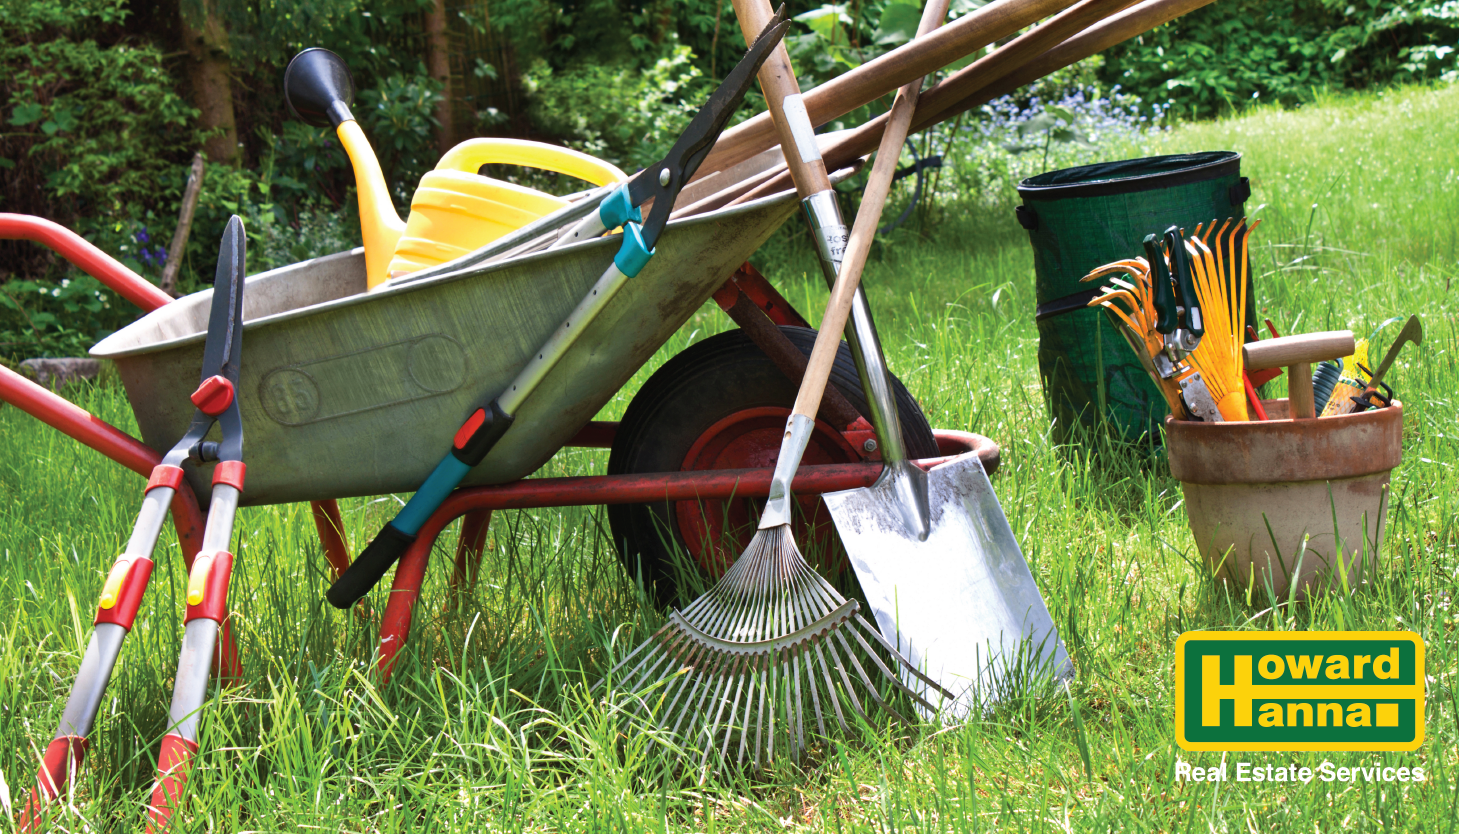 Improve Your Yard With These 5 Lawn Care Projects